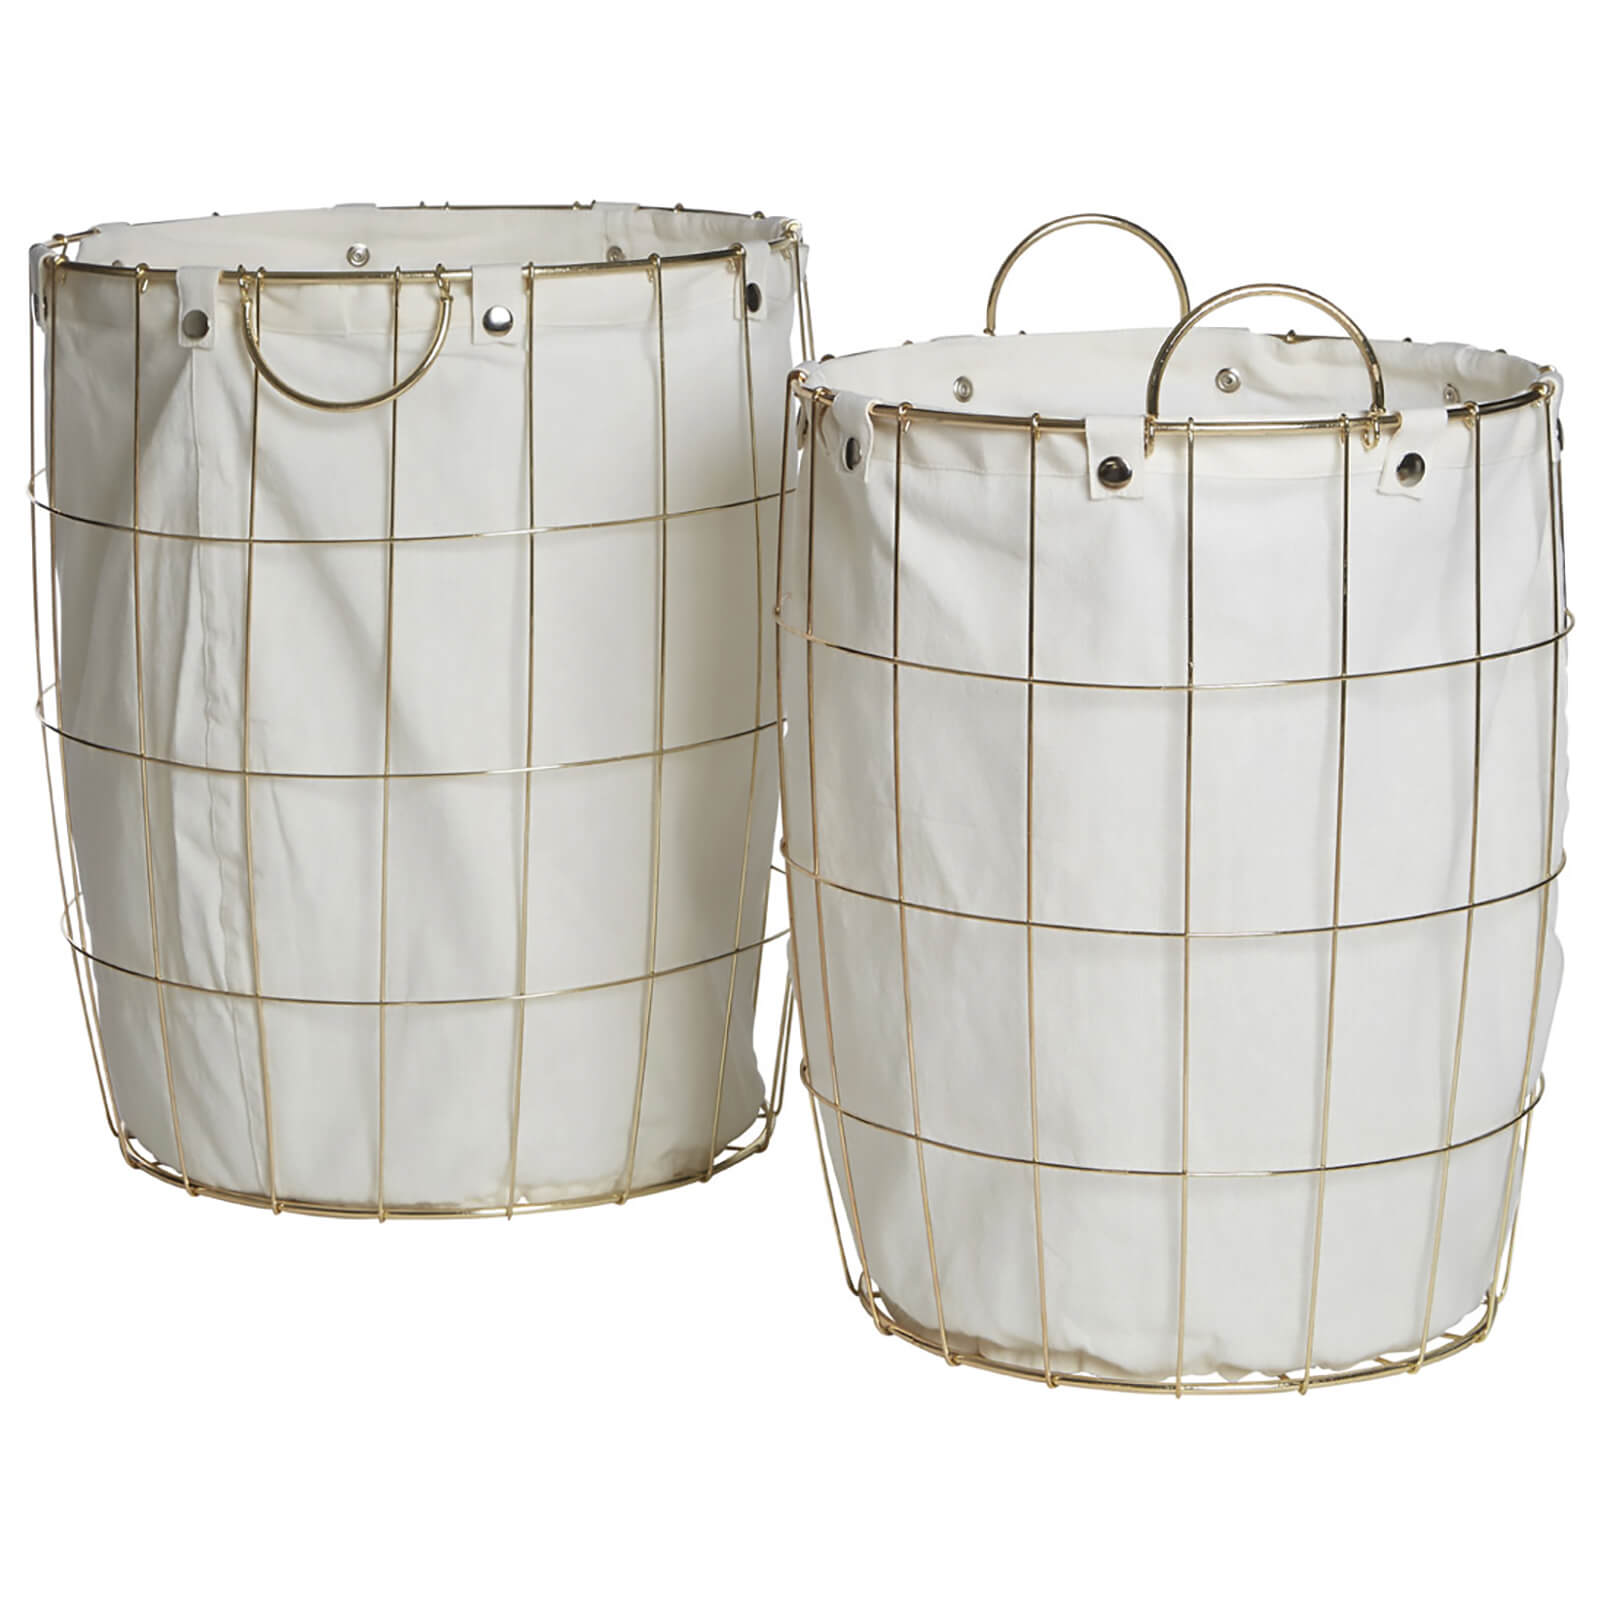 Fifty Five South Round Wire Laundry Baskets - Gold Plated/Linen (Set of 2)